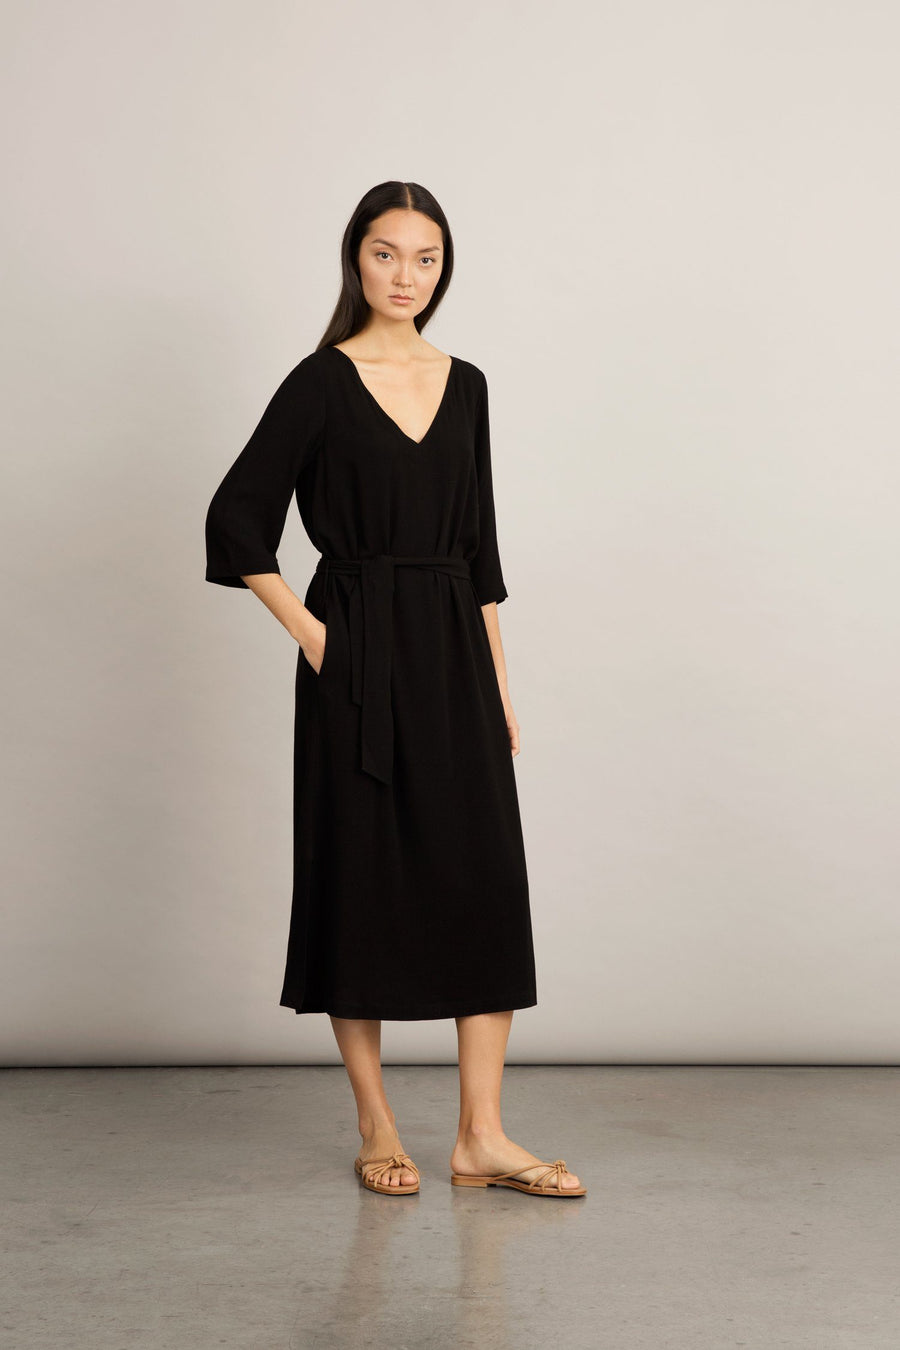 SENNA DRESS - BLACK Dress Stylein